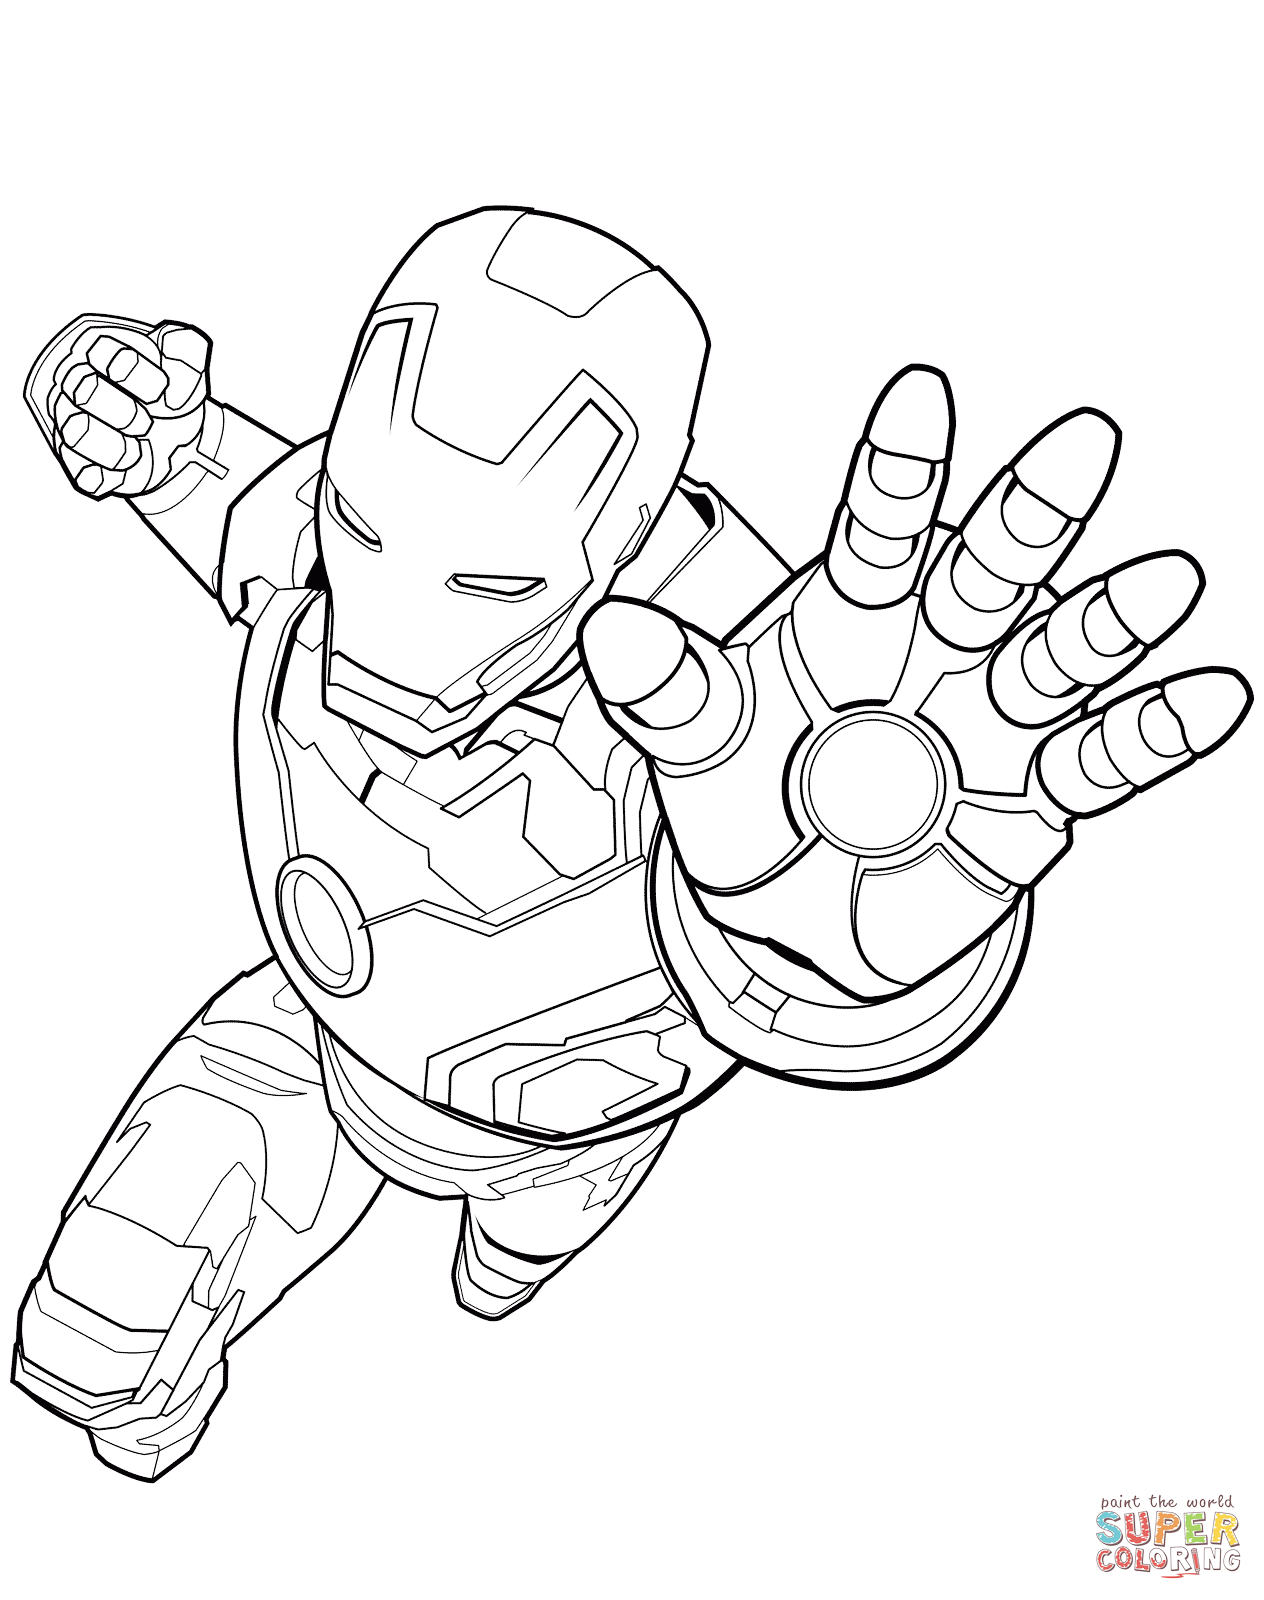 Avengers Iron Man Coloring Page Free Printable Coloring Pages In 2020 Avengers Coloring Superhero Coloring Pages Avengers Coloring Pages